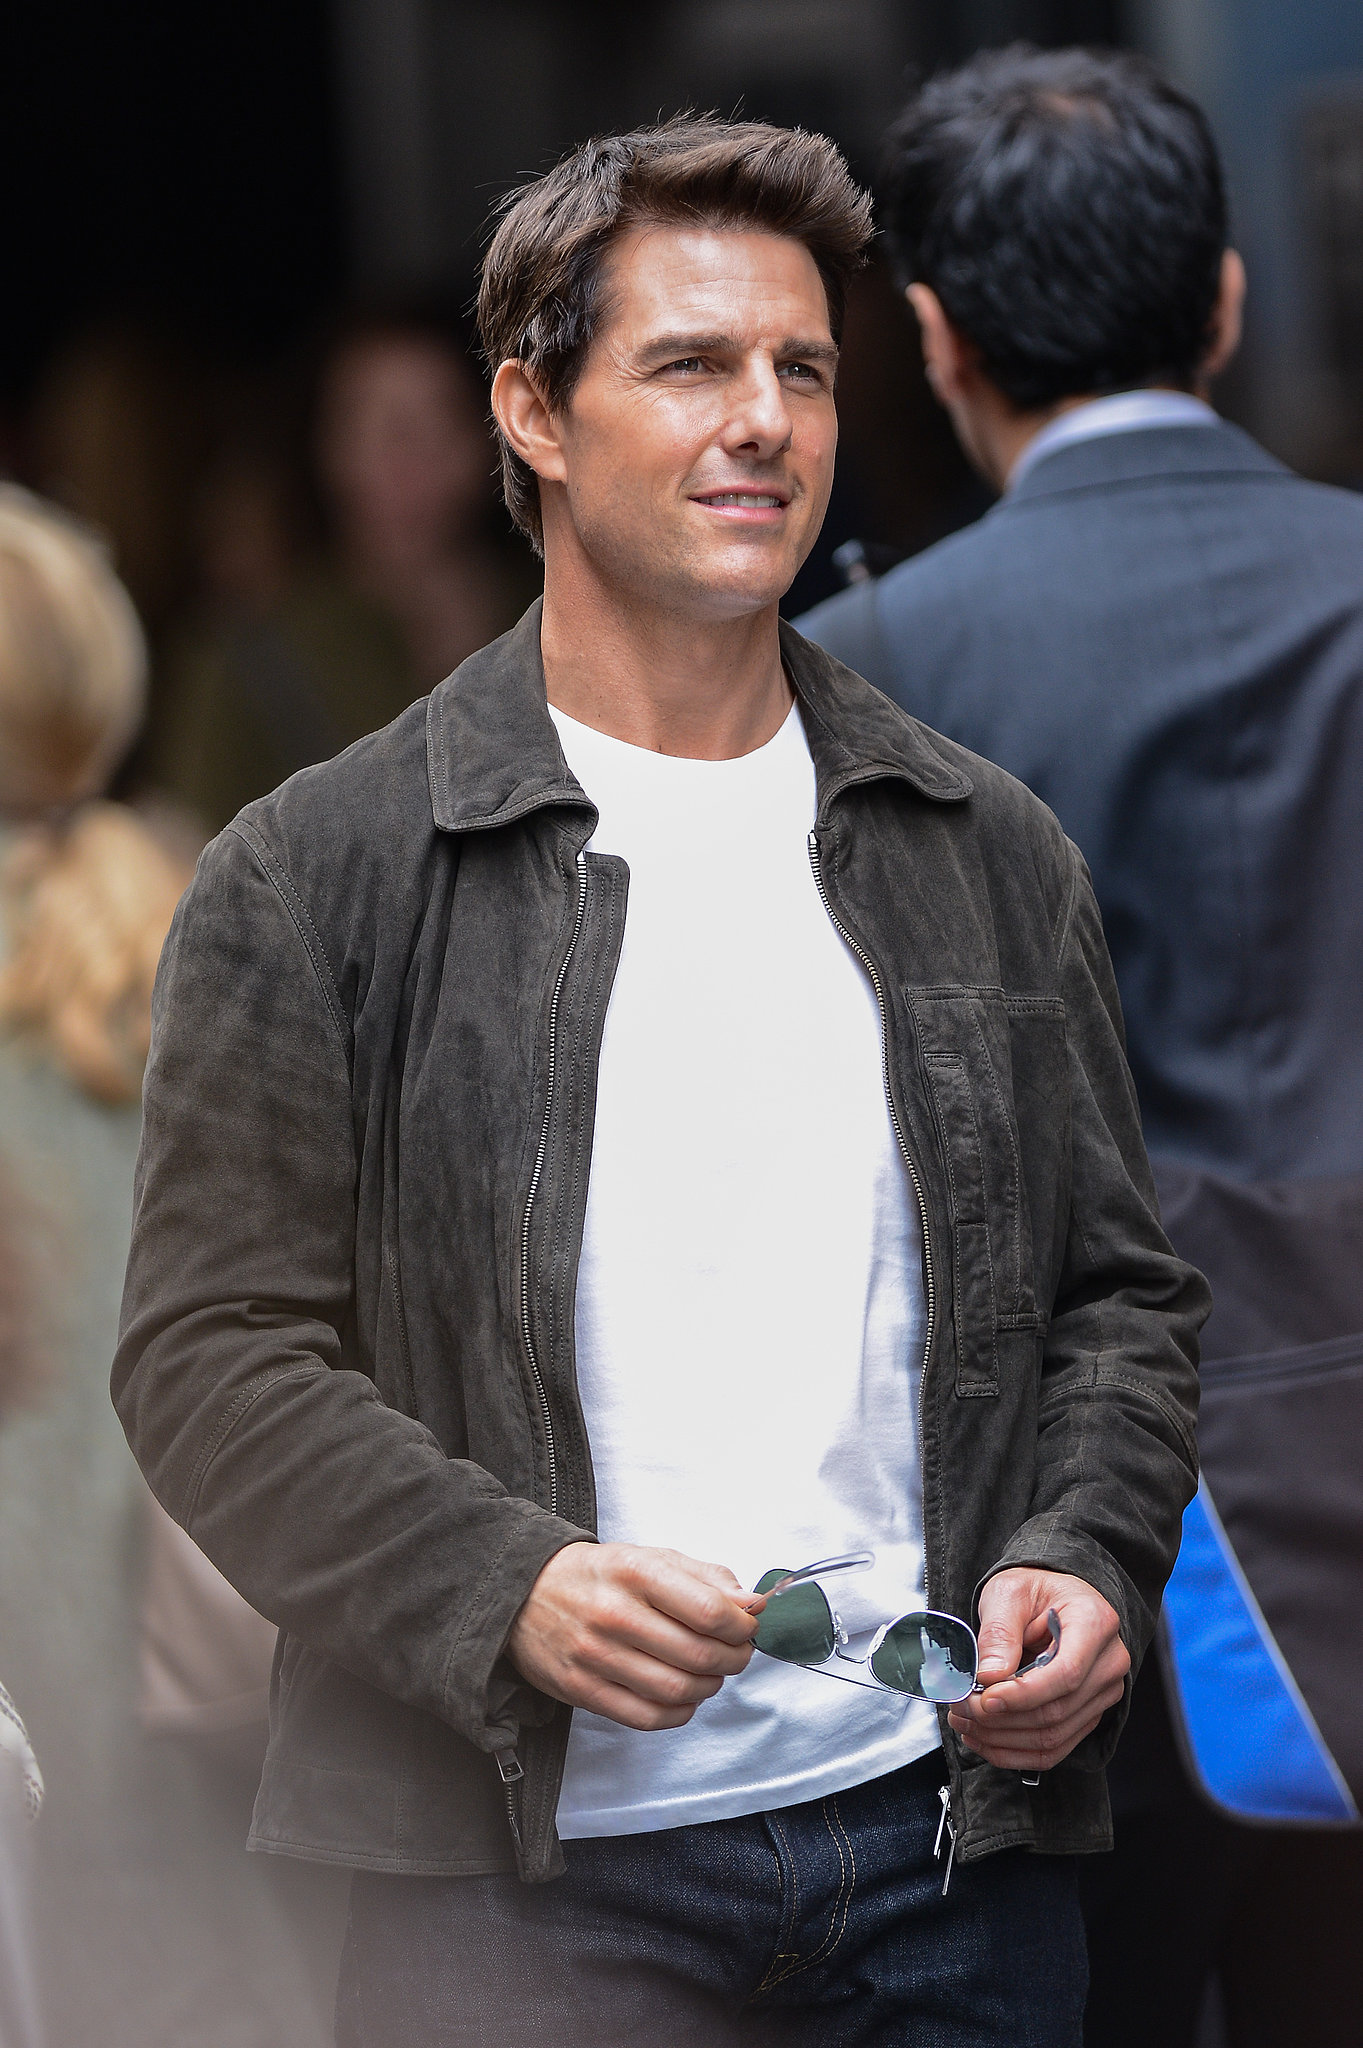 Tom Cruise showed off his sexy smile on the set of Oblivion in NYC in J